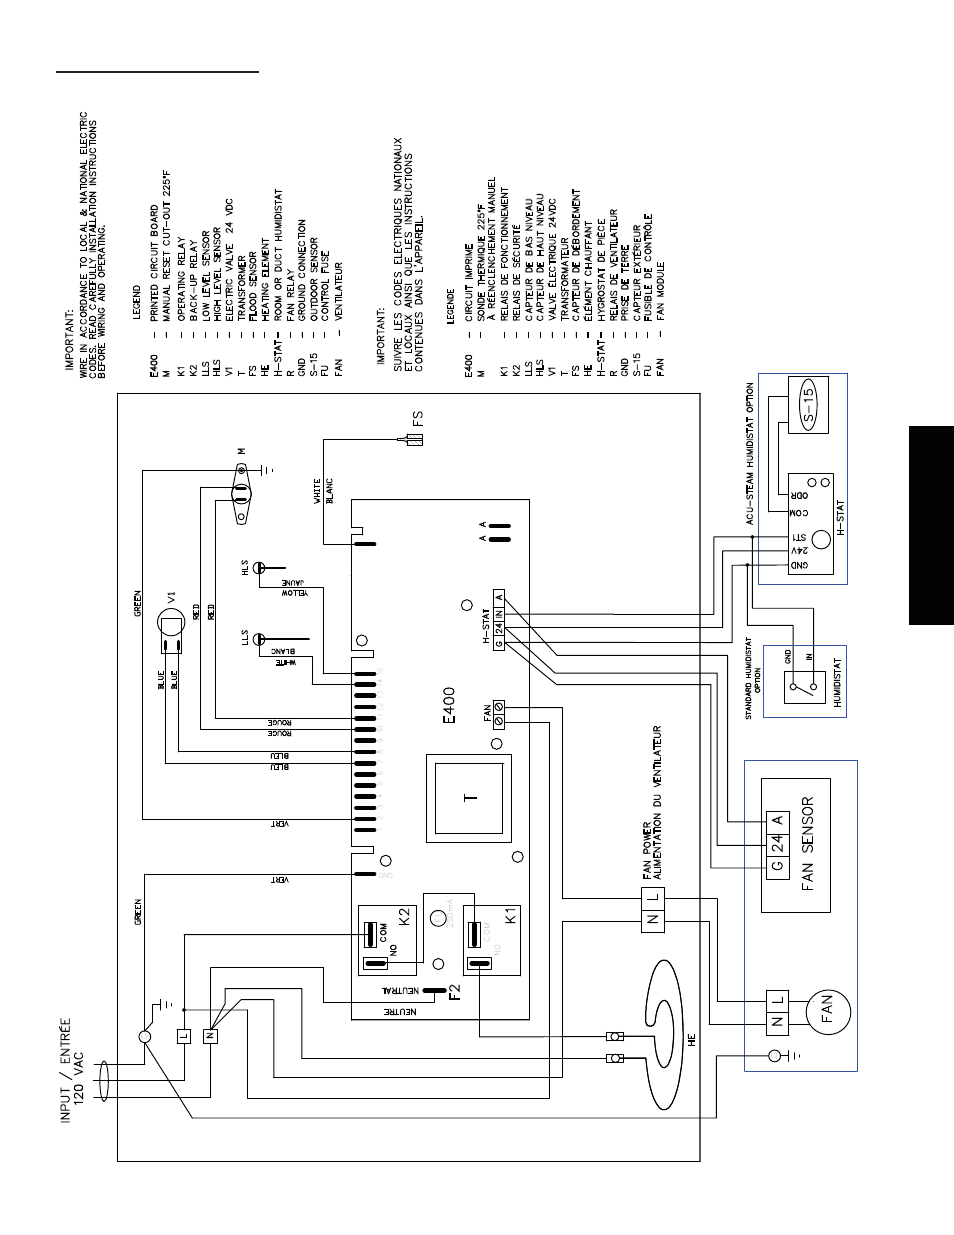 thermolec splitsteam page29?resize=665%2C861 markel duct heater wiring diagram electric baseboard thermostat indeeco duct heater wiring diagram at n-0.co